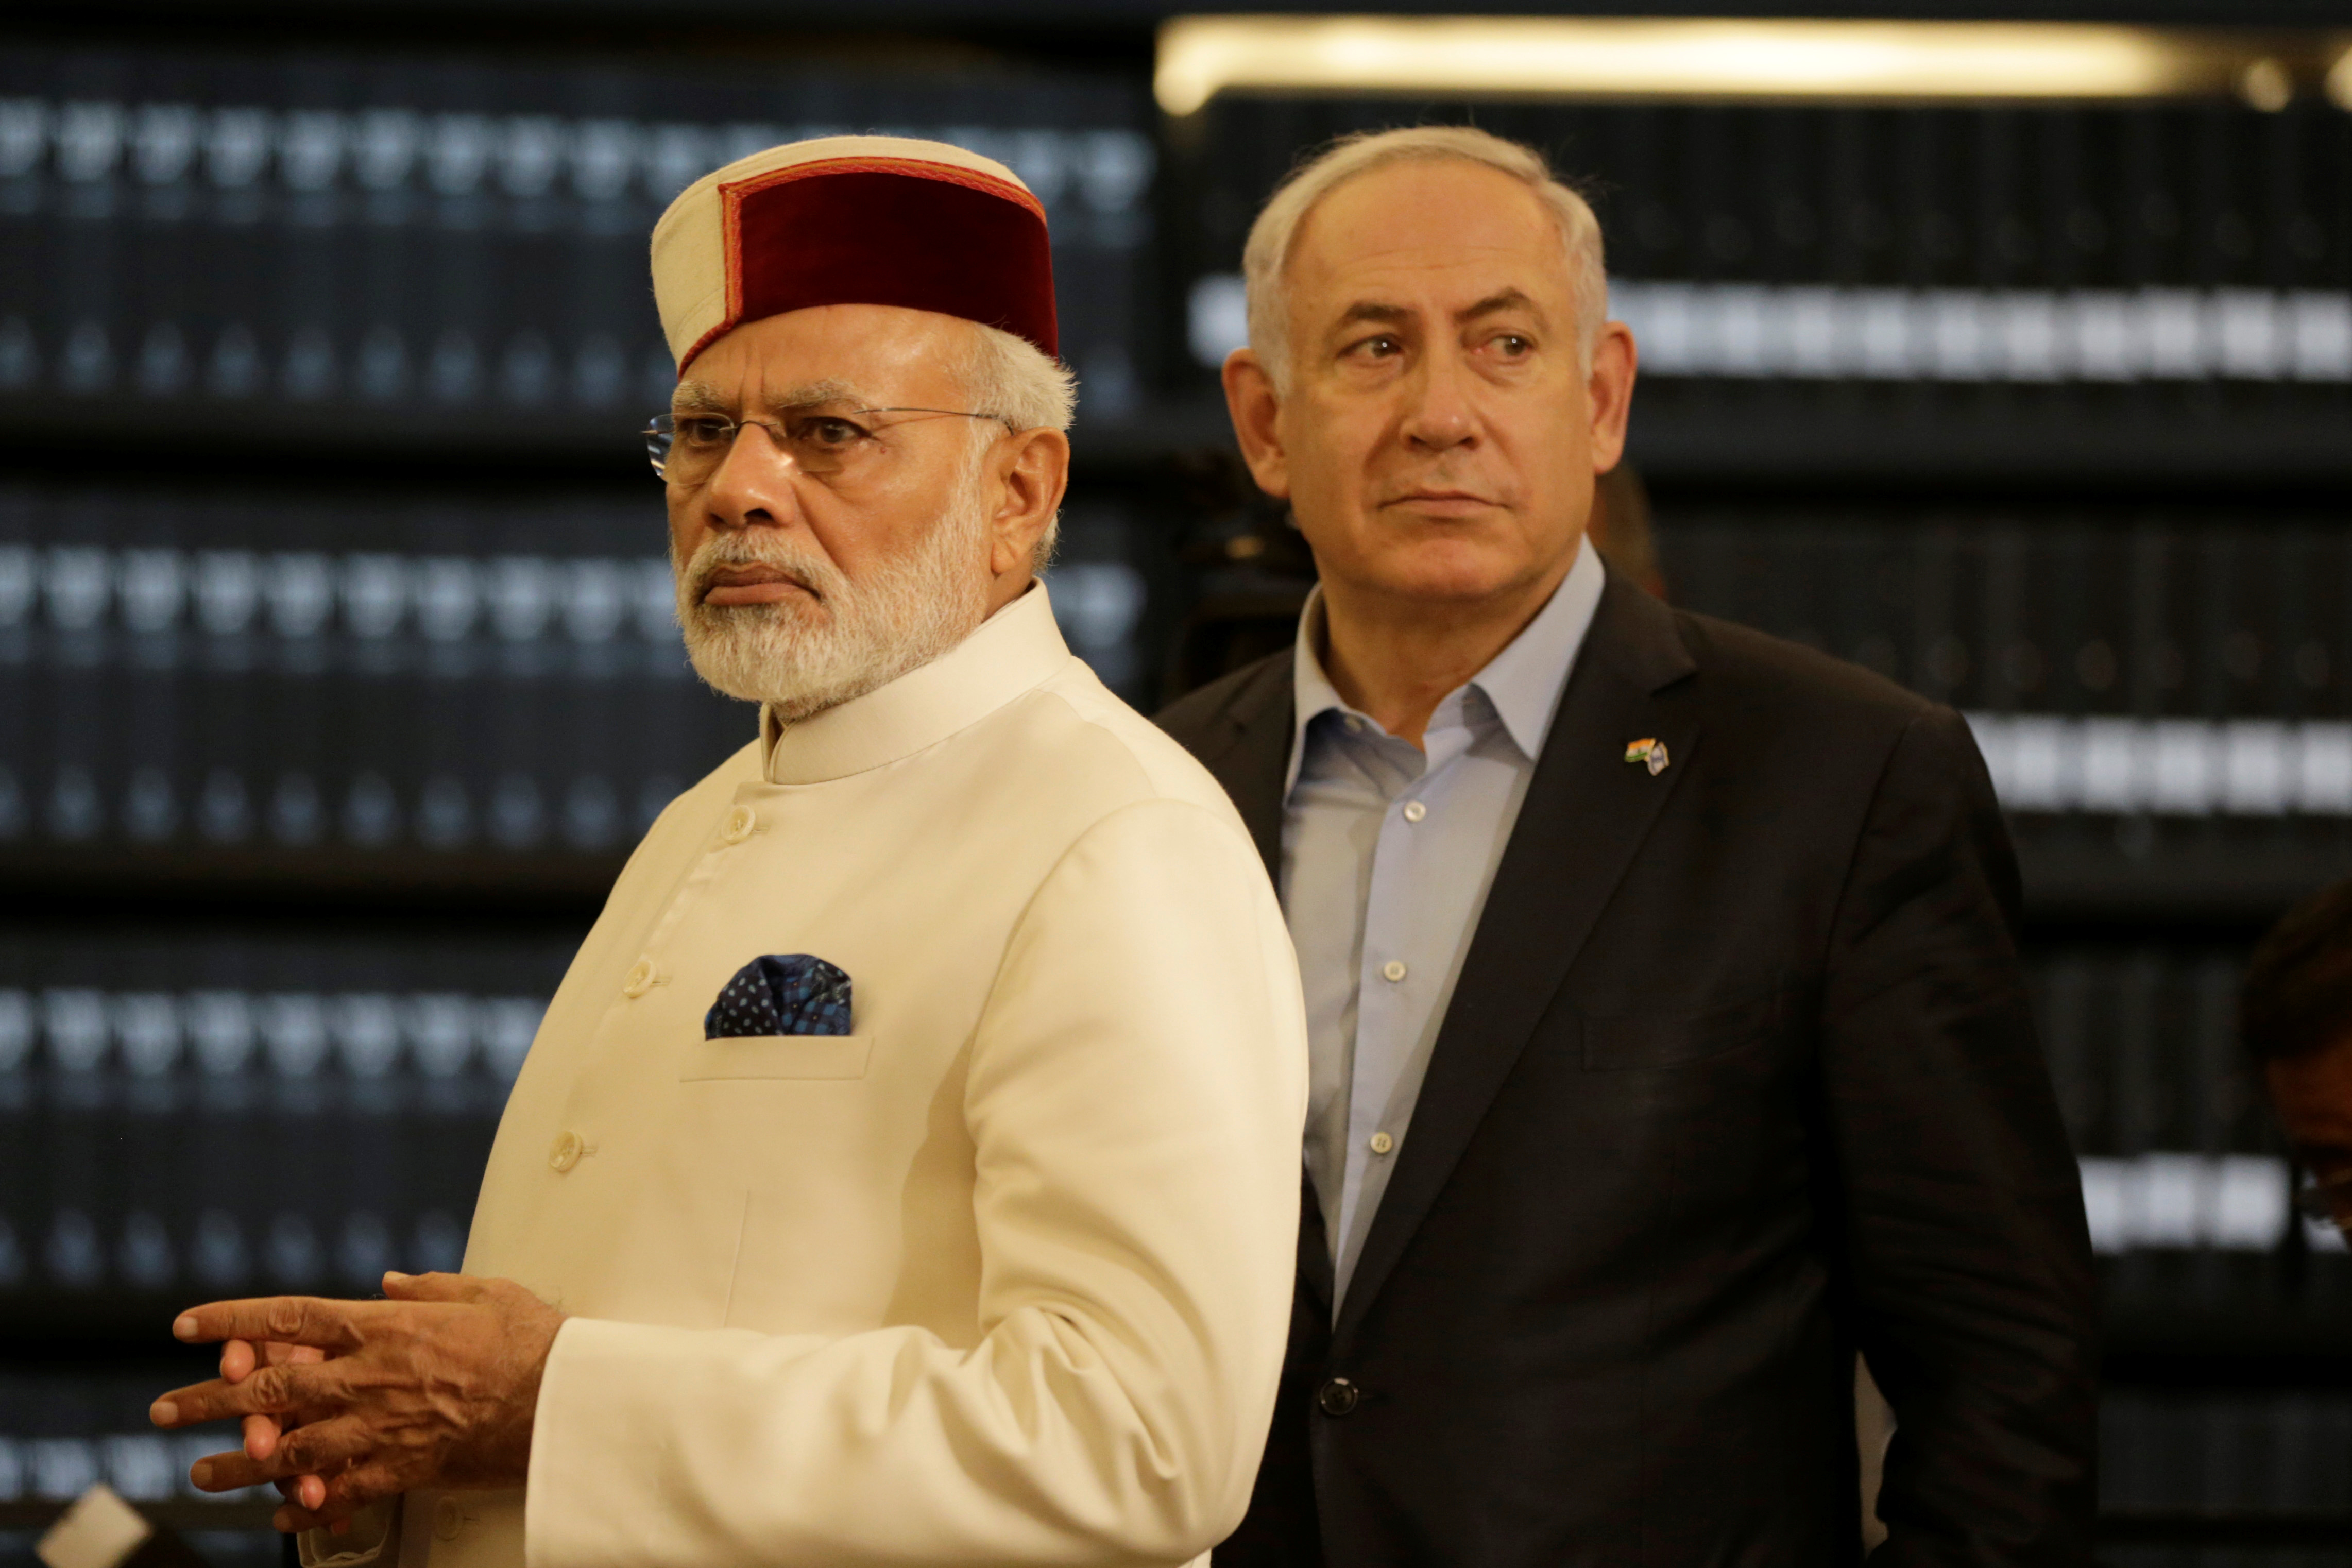 Indian Prime Minister Narendra Modi accompanied by Israeli Prime Minister Benjamin Netanyahu (R) during a visit to Yad Vashem Holocaust memorial in Jerusalem on 4 July, 2017 (Reuters)